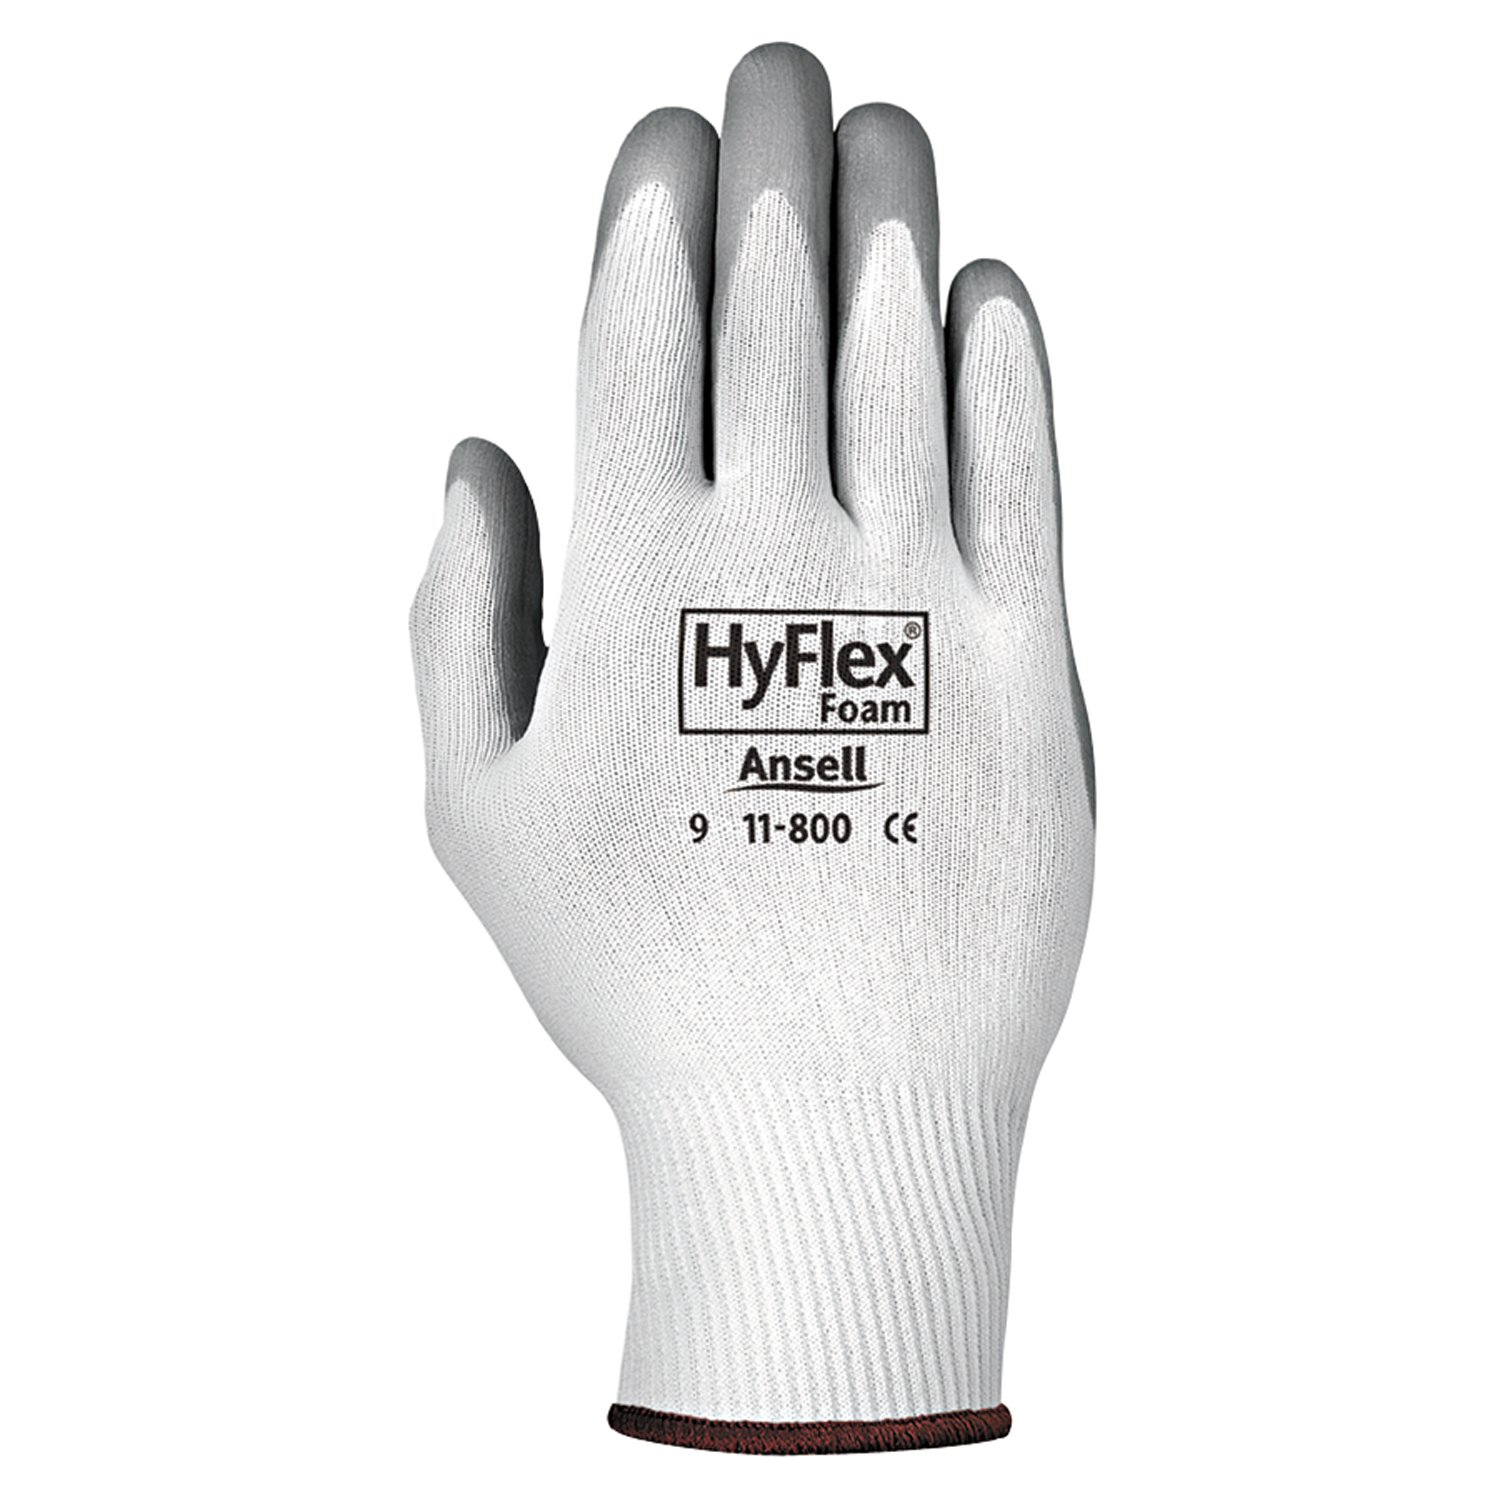 Ansell 11-800-9 HyFlex Foam Gloves, Size 9, White/Gray (Pack of 12) by Ansell B00AI0ITTQ